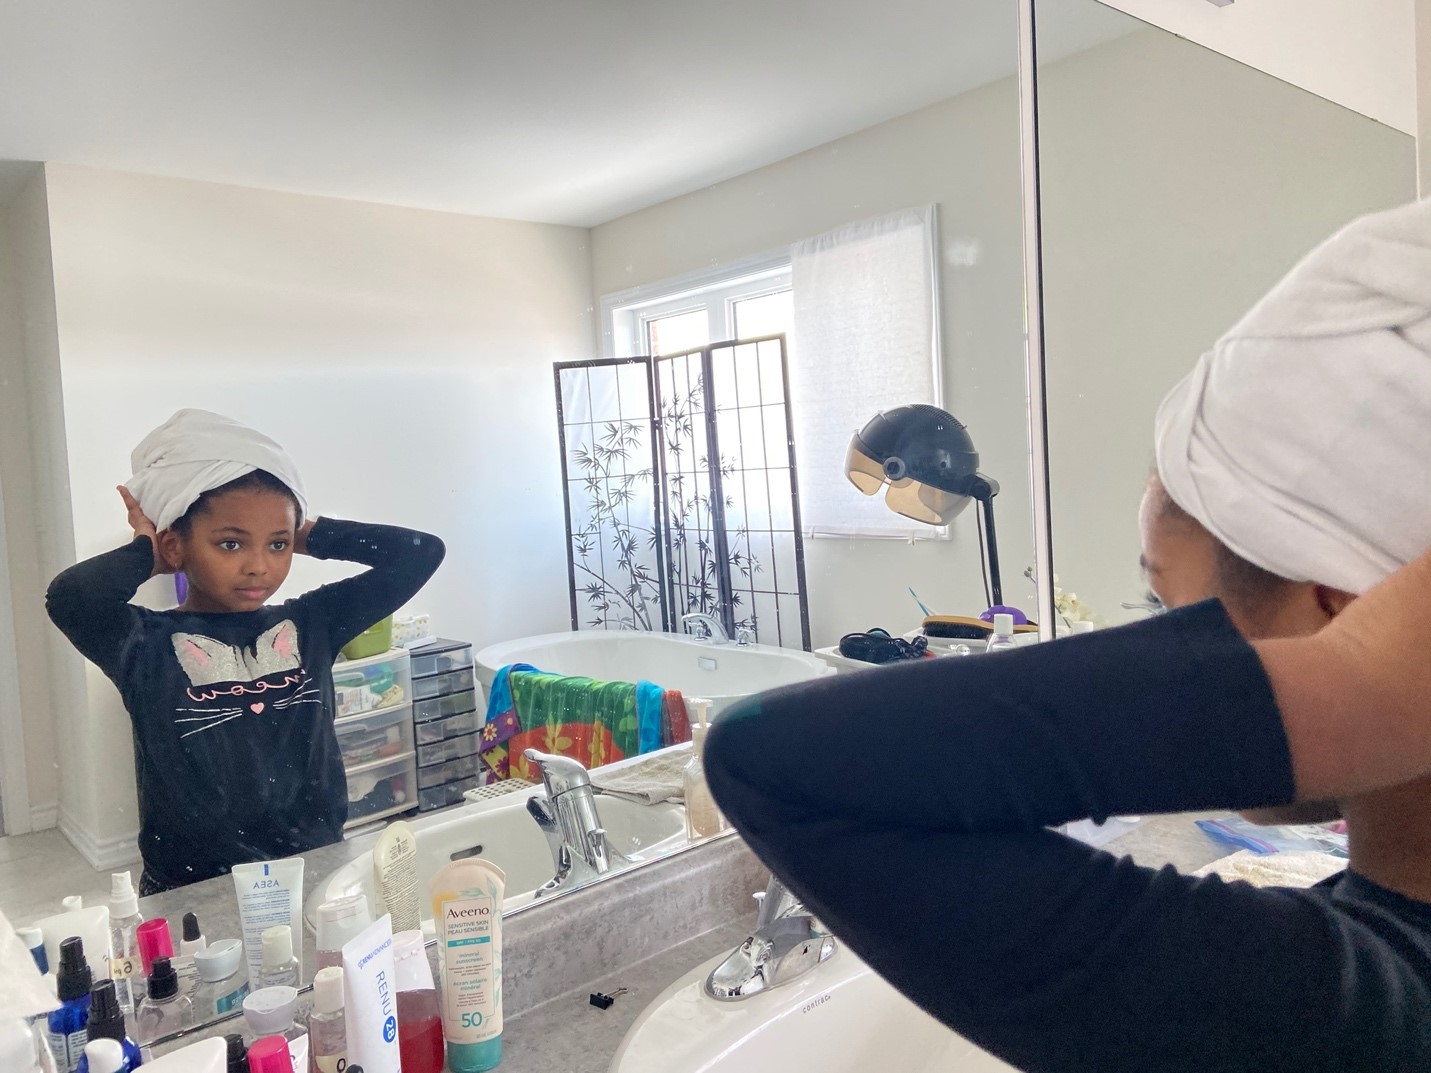 04: Isabella fixing her wrap towel in the mirror. One-Point Perspective (Block, 16-18)